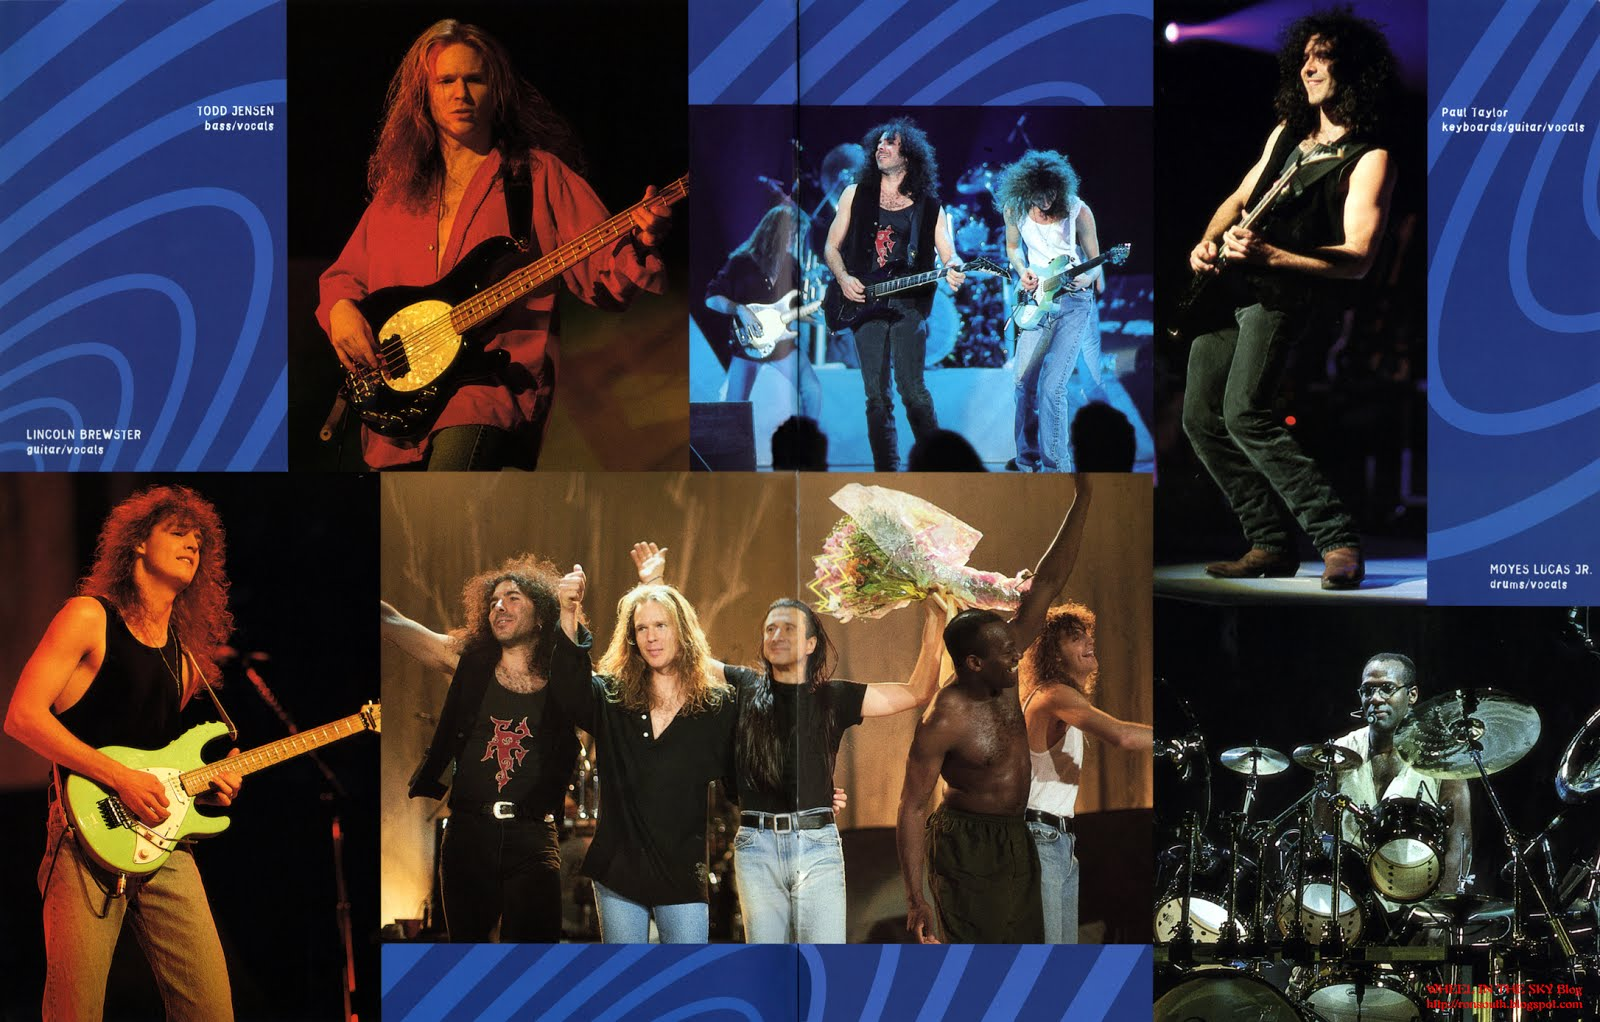 wheel in the sky steve perry for the love of strange medicine the second poster a centerfold of steve perry and band on stage